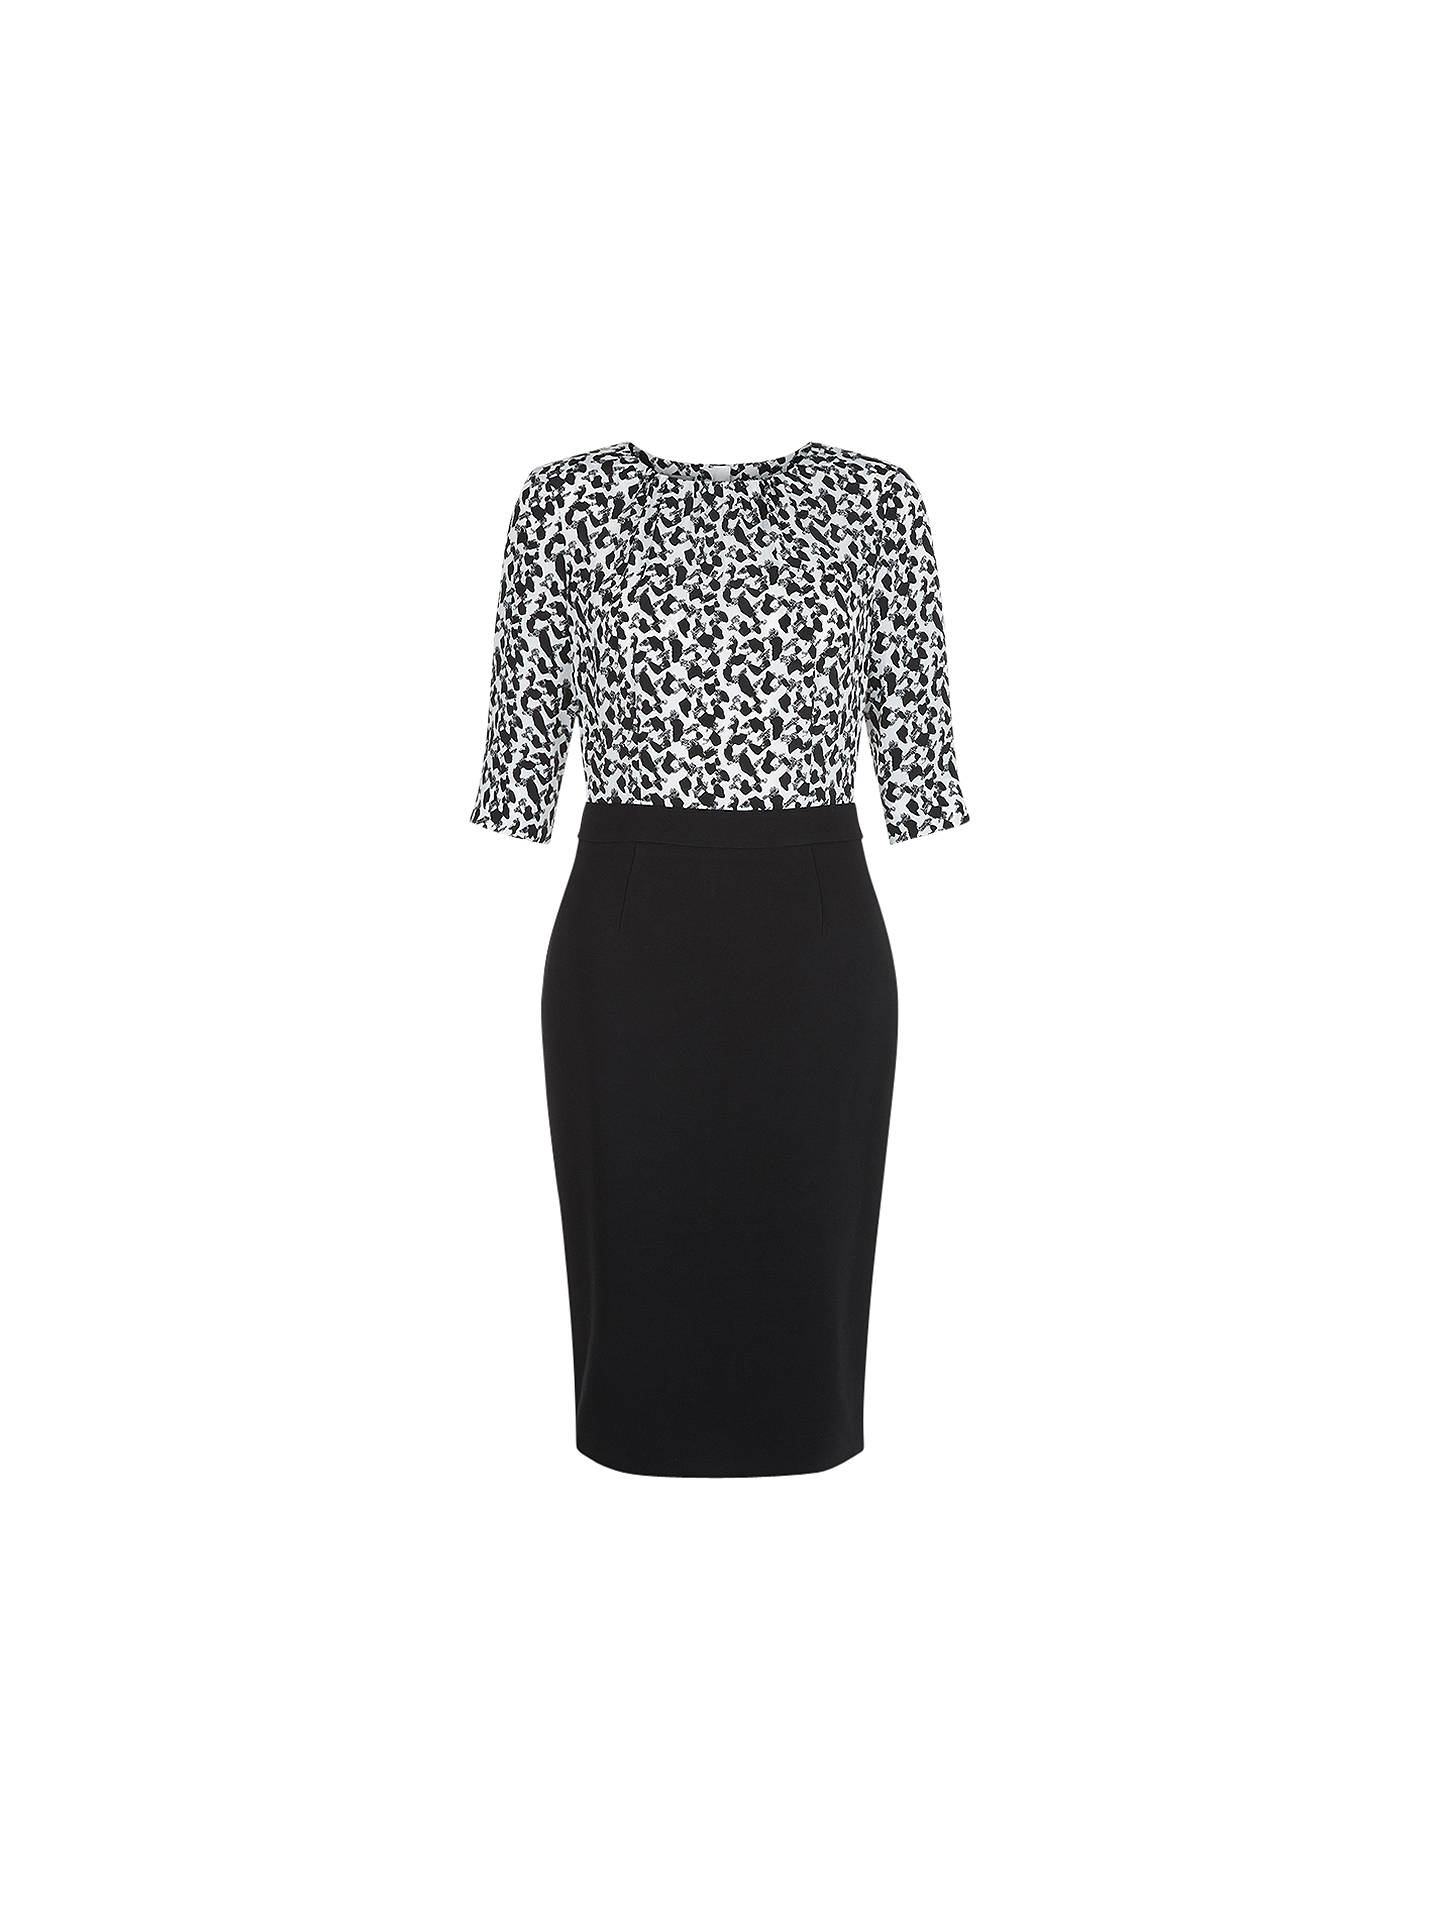 6b1f3f2e98d4 Buy Hobbs Calista Dress, Black/Ivory, 6 Online at johnlewis.com ...